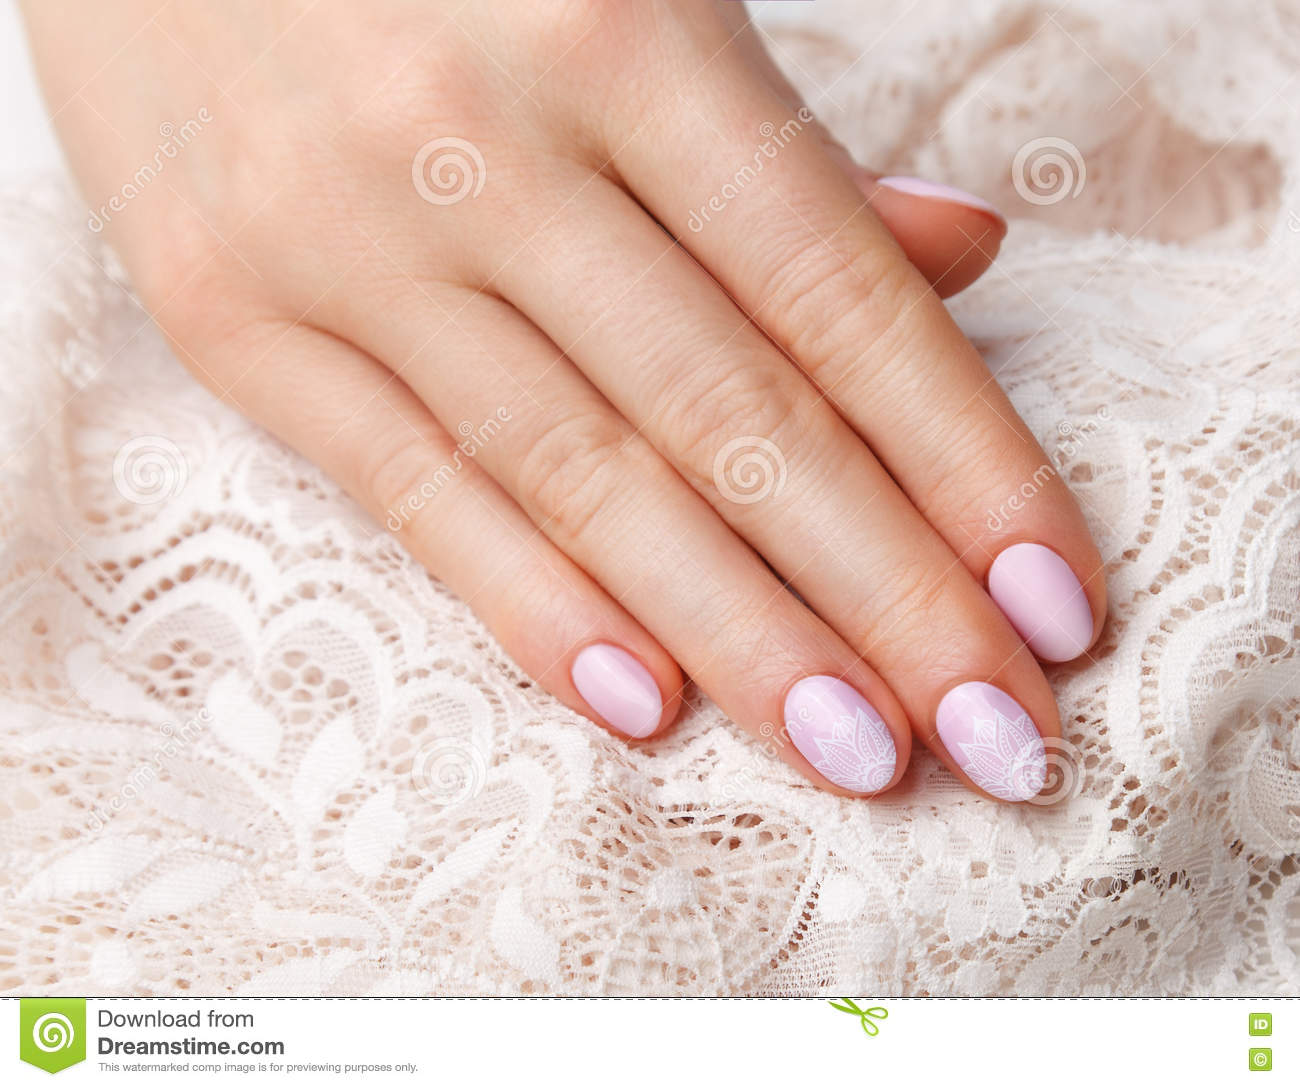 Close-up Of Romantic Vintage Style Nails Stock Image - Image of nail ...